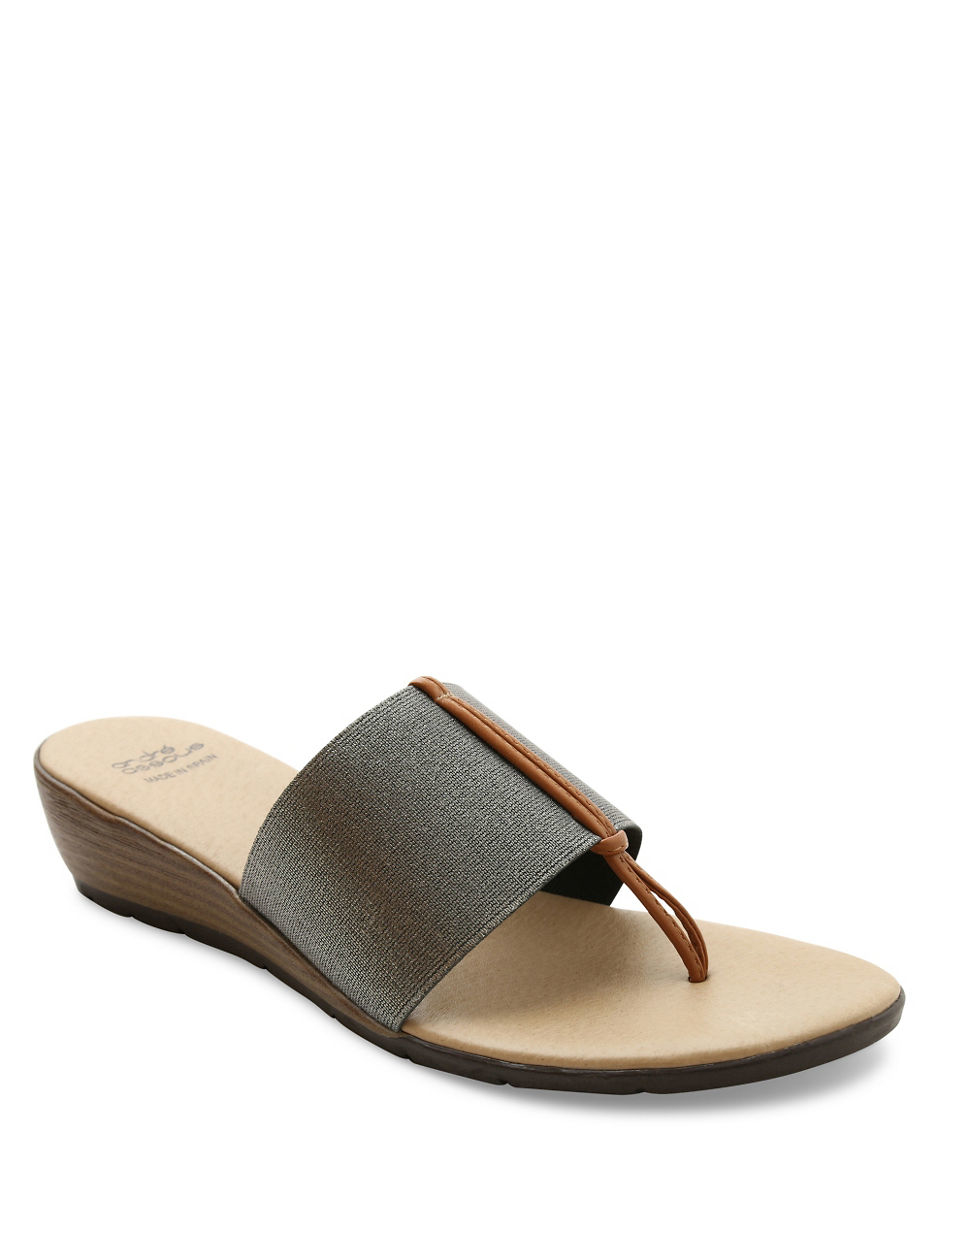 Andre assous Nima Wedge Sandals in Brown